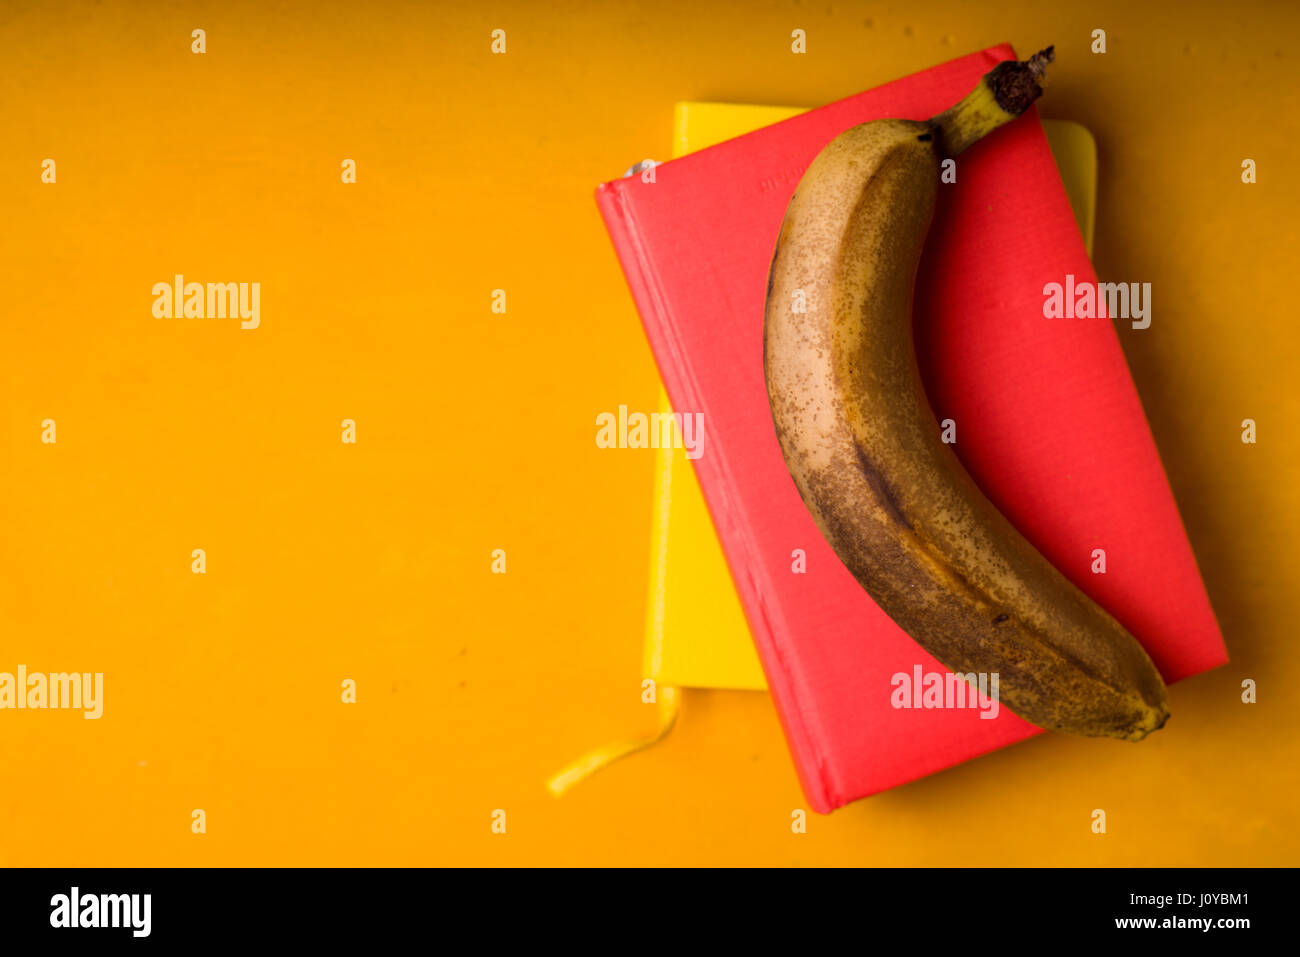 One banana on notepads on a bright background - Stock Image